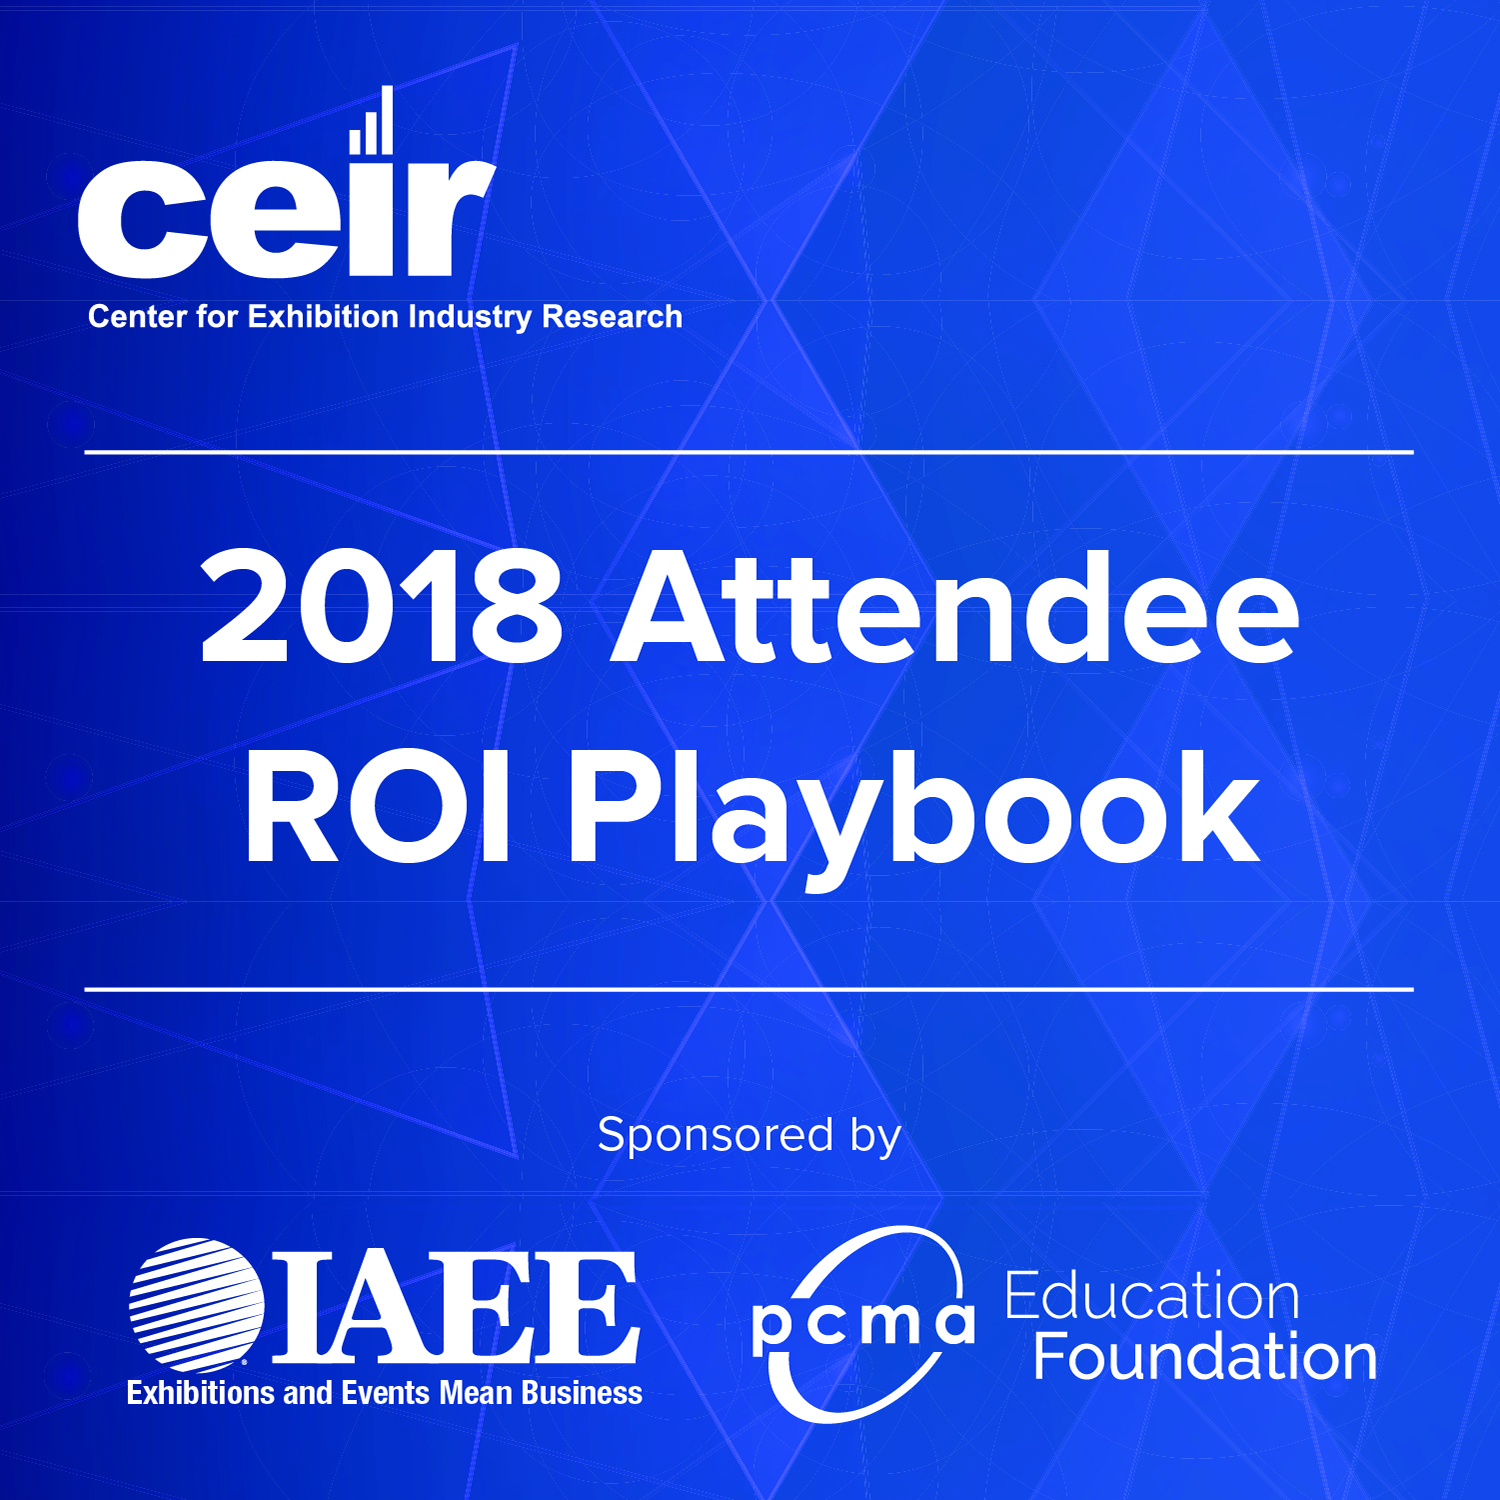 2018 Attendee ROI Playbook: Part 5